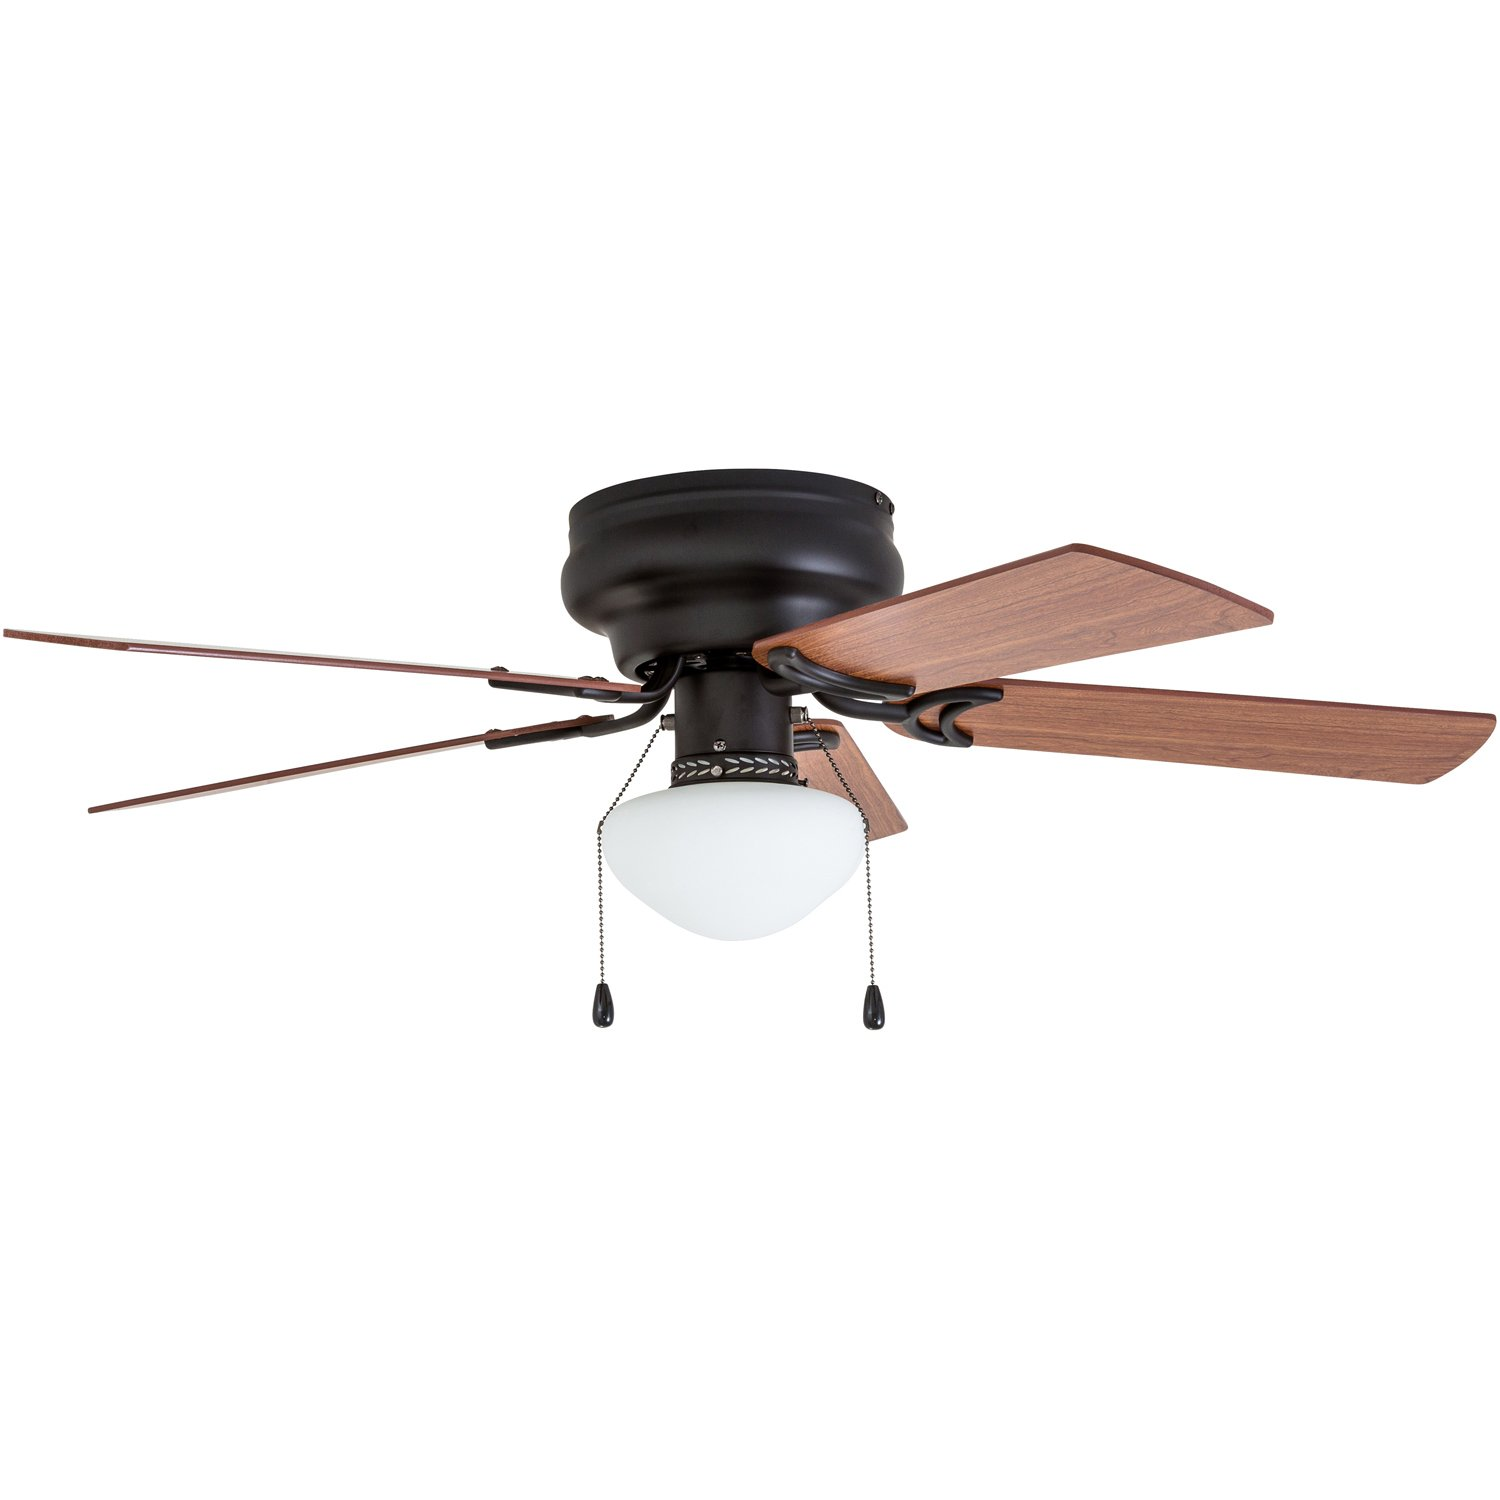 Prominence Home 50860 Alvina LED Globe Light Hugger/Low Profile Ceiling Fan, 42 inches, Bronze by Prominence Home (Image #6)